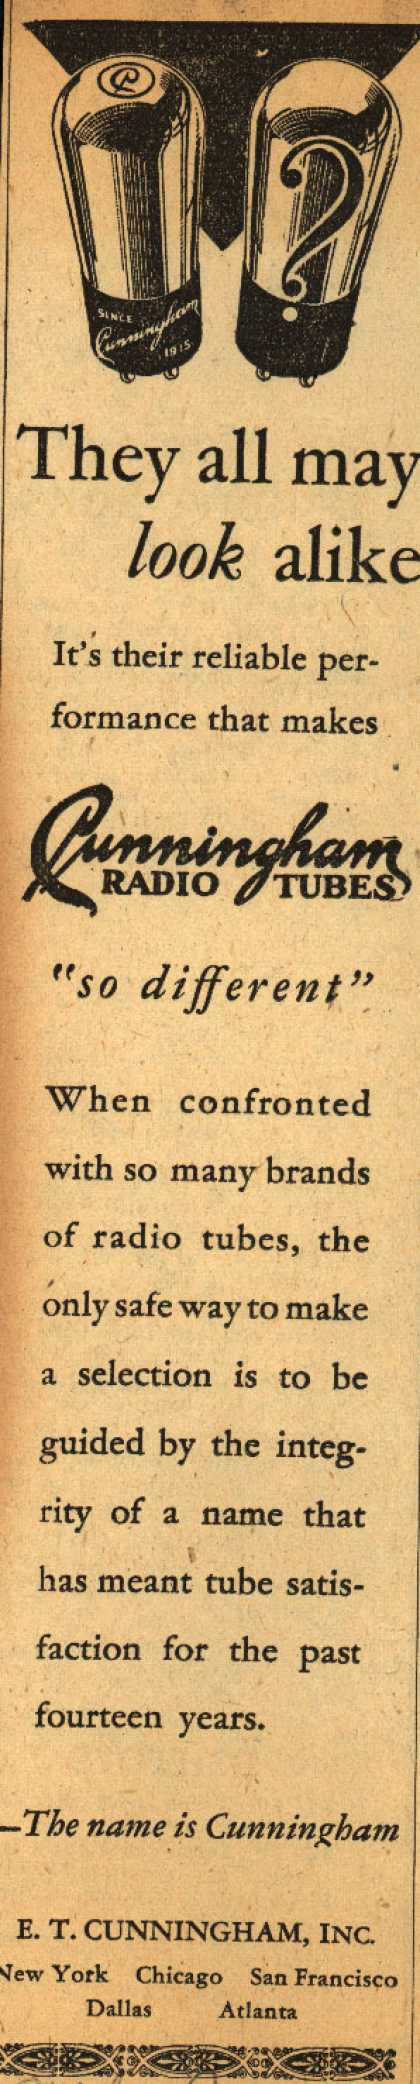 E.T. Cunningham's Radio Tubes – They all may look alike (1929)